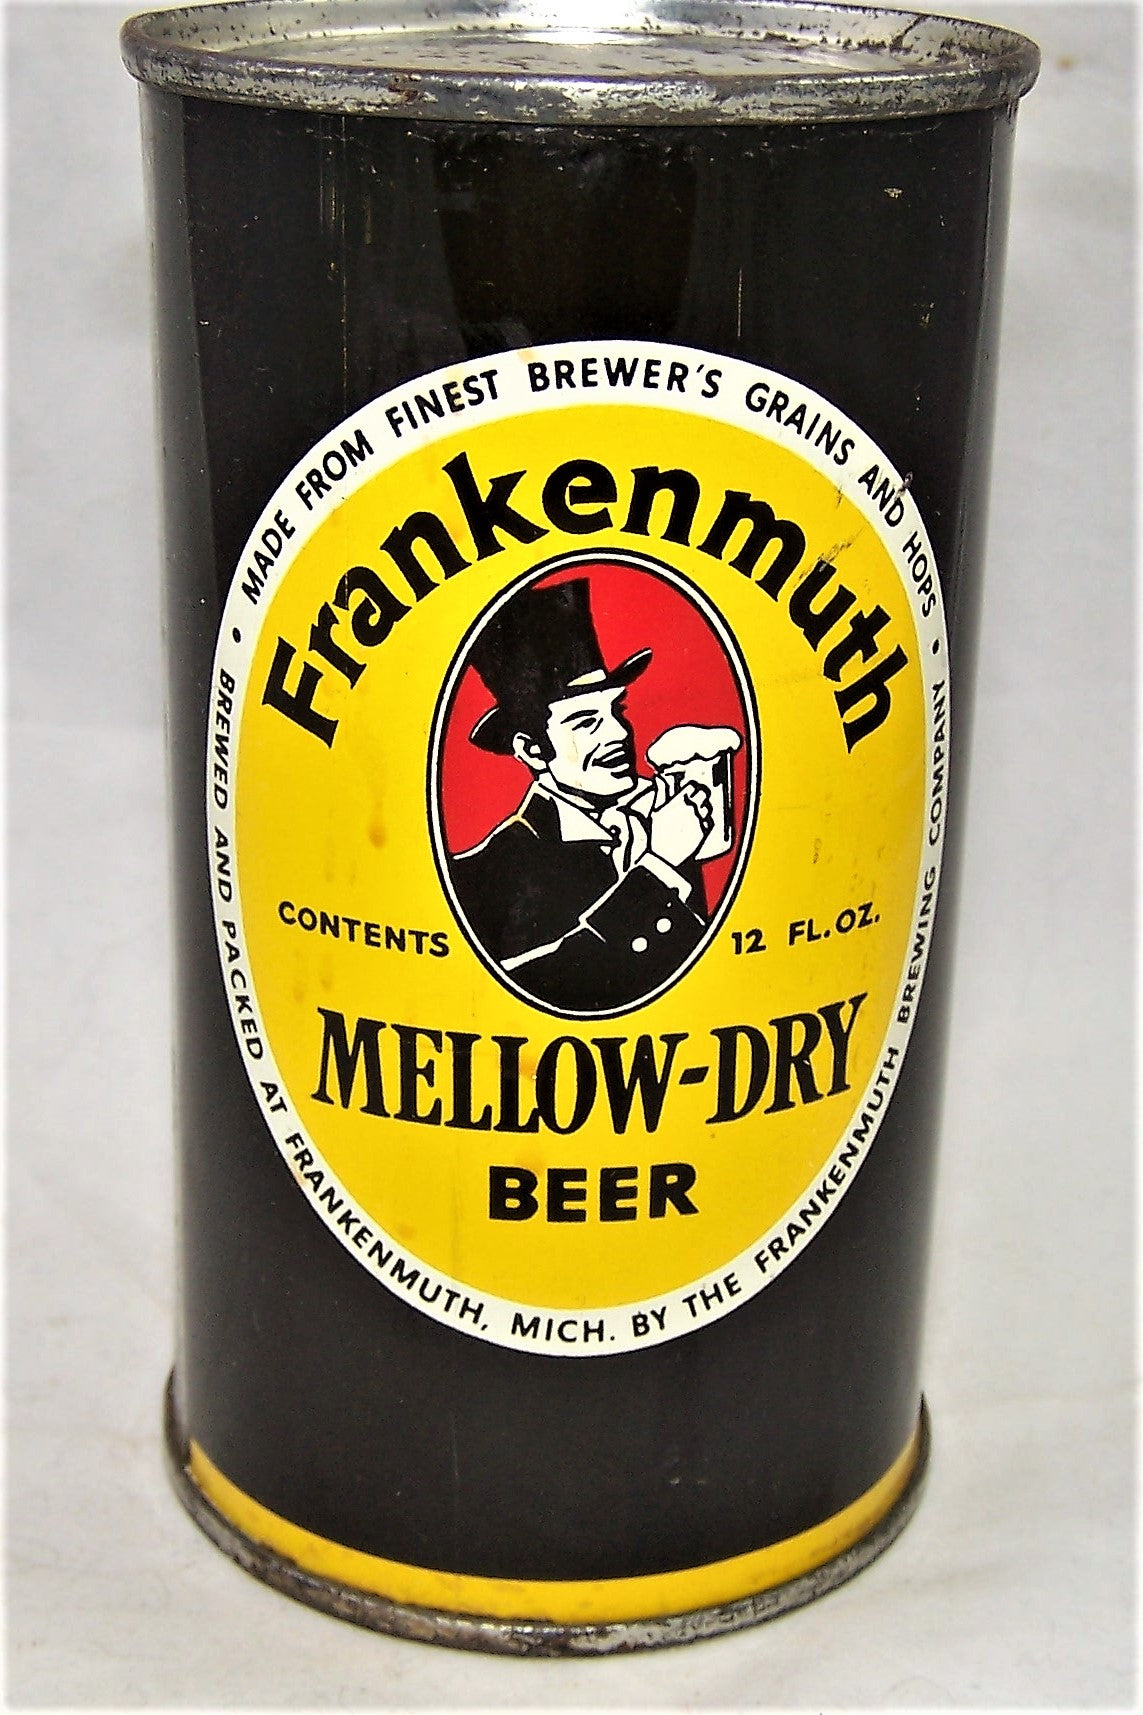 Frankenmuth Mellow-Dry Beer, USBC 66-28, Grade 1/1+ Sold on 03/10/20